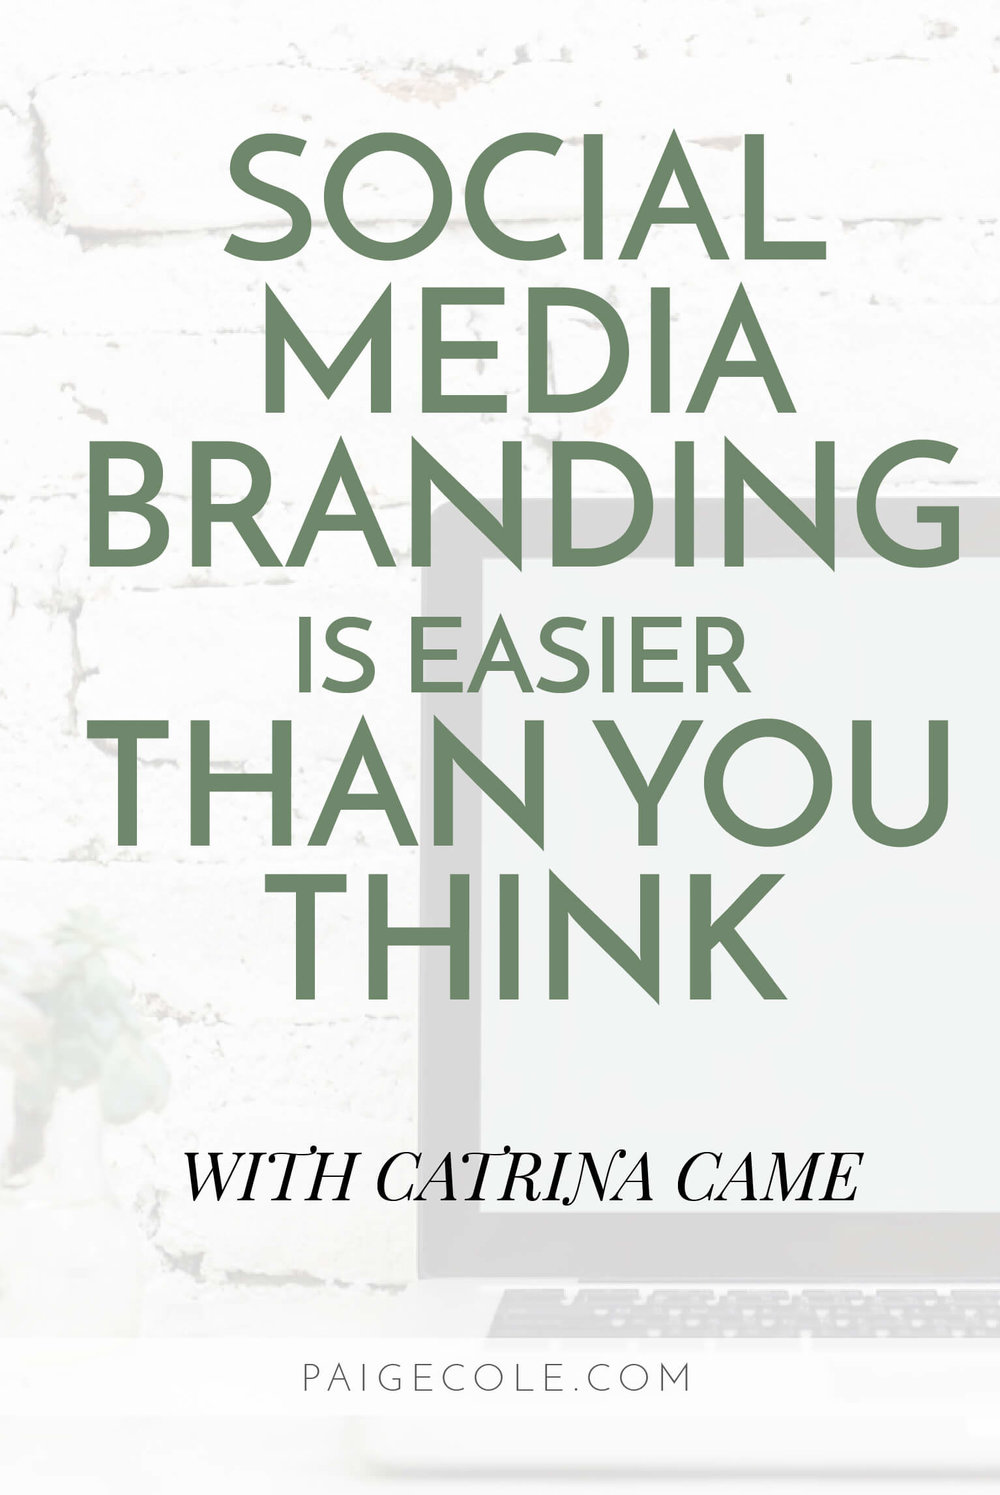 Social Media Branding is easier than you think. After all, it's an extension of you.